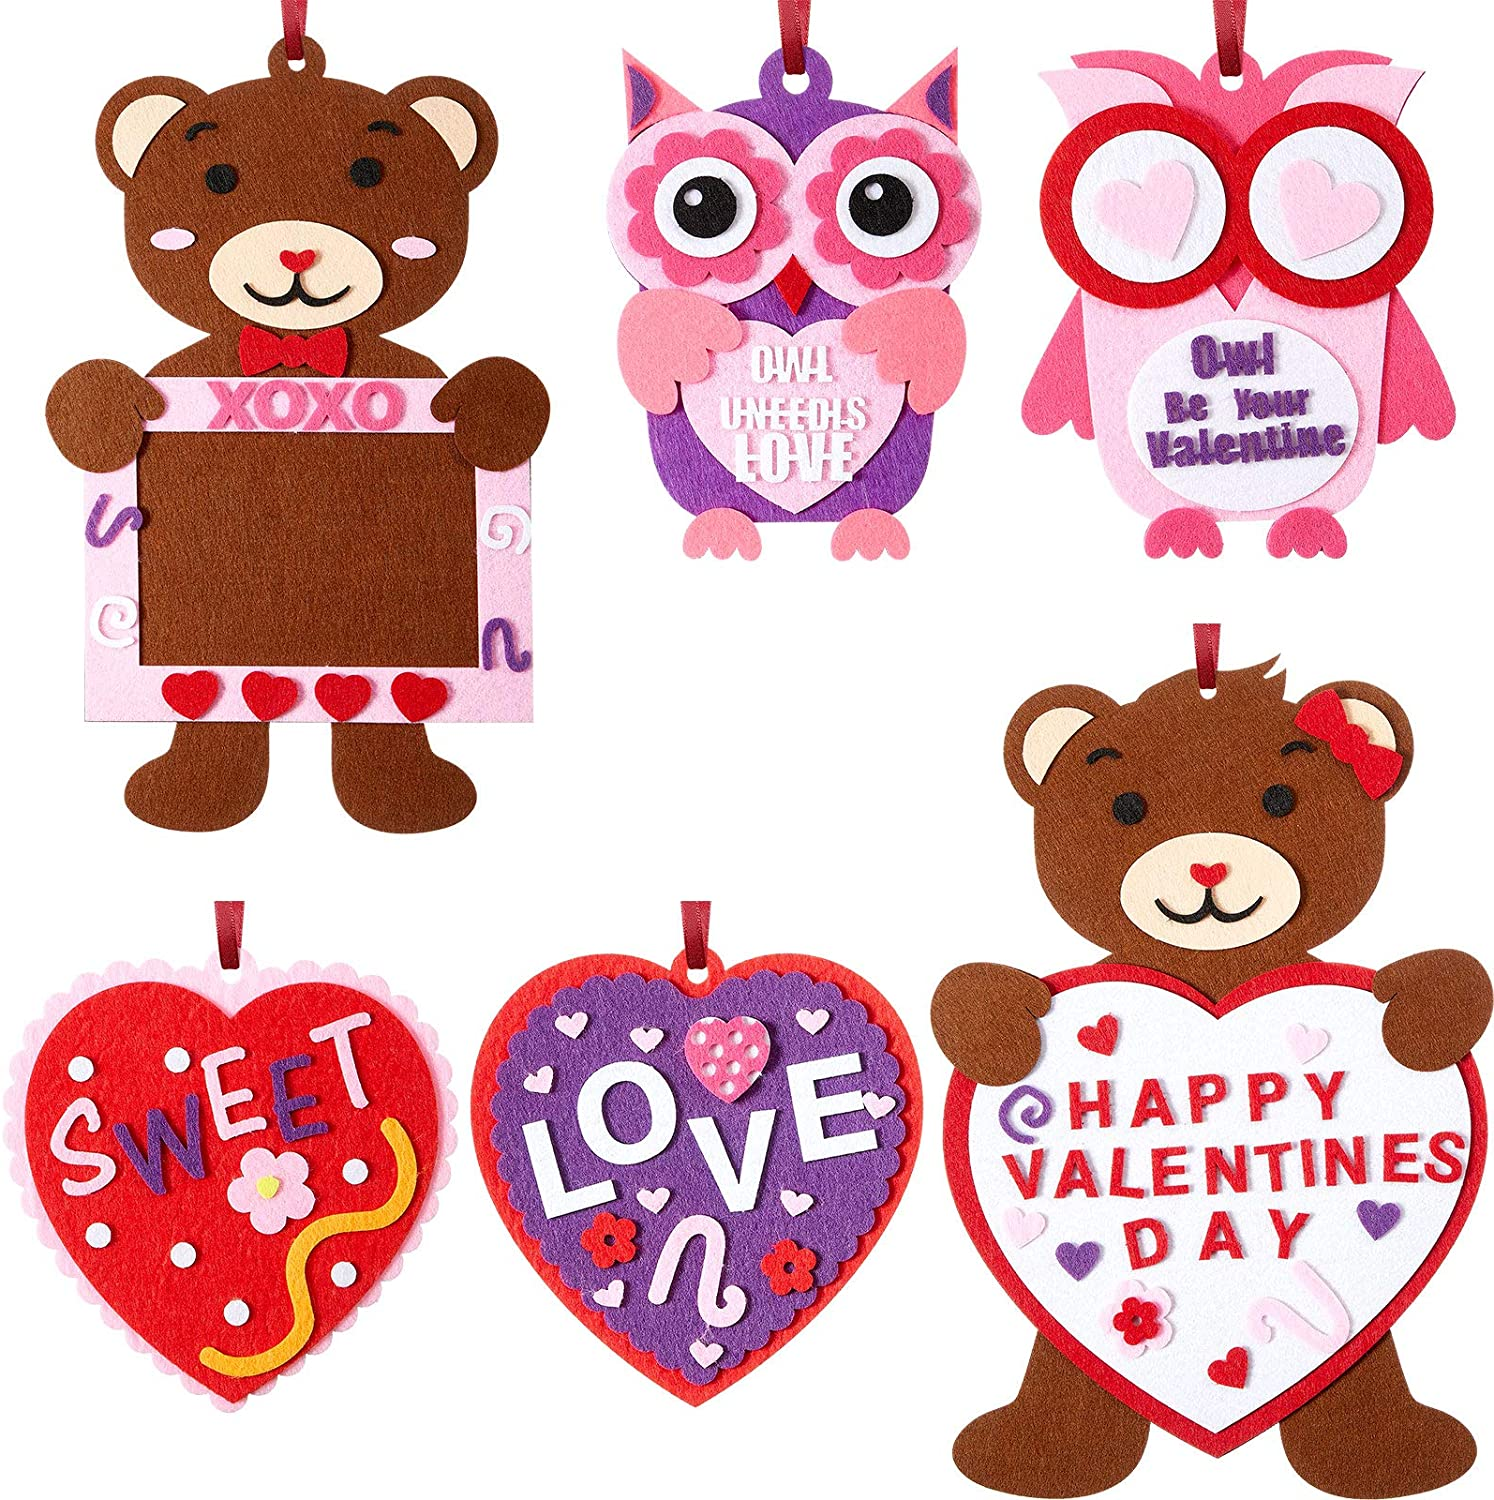 Zonon 6 Set Valentine's Day Felt Craft Kits, Heart Owl Love Bears DIY Felt Creative Hanging Ornament for Home Activities, School Art Projects, Handmade Presents